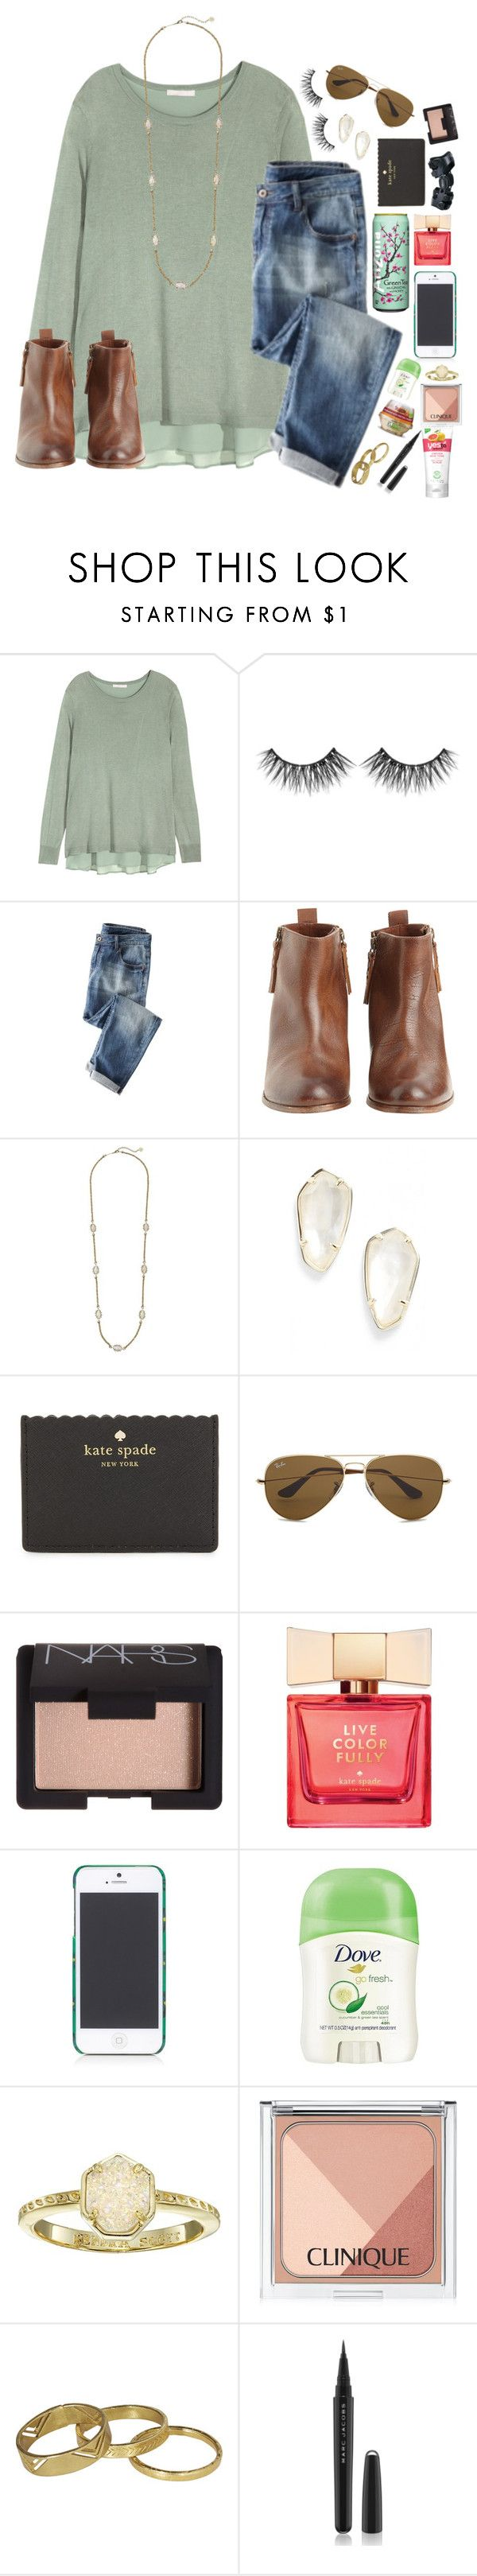 """""""{HAPPY MARCH}"""" by lydia-hh ❤ liked on Polyvore featuring H&M, Hoss Intropia, Kendra Scott, Kate Spade, Ray-Ban, NARS Cosmetics, Tory Burch, Dove, Clinique and Junk Food Clothing"""